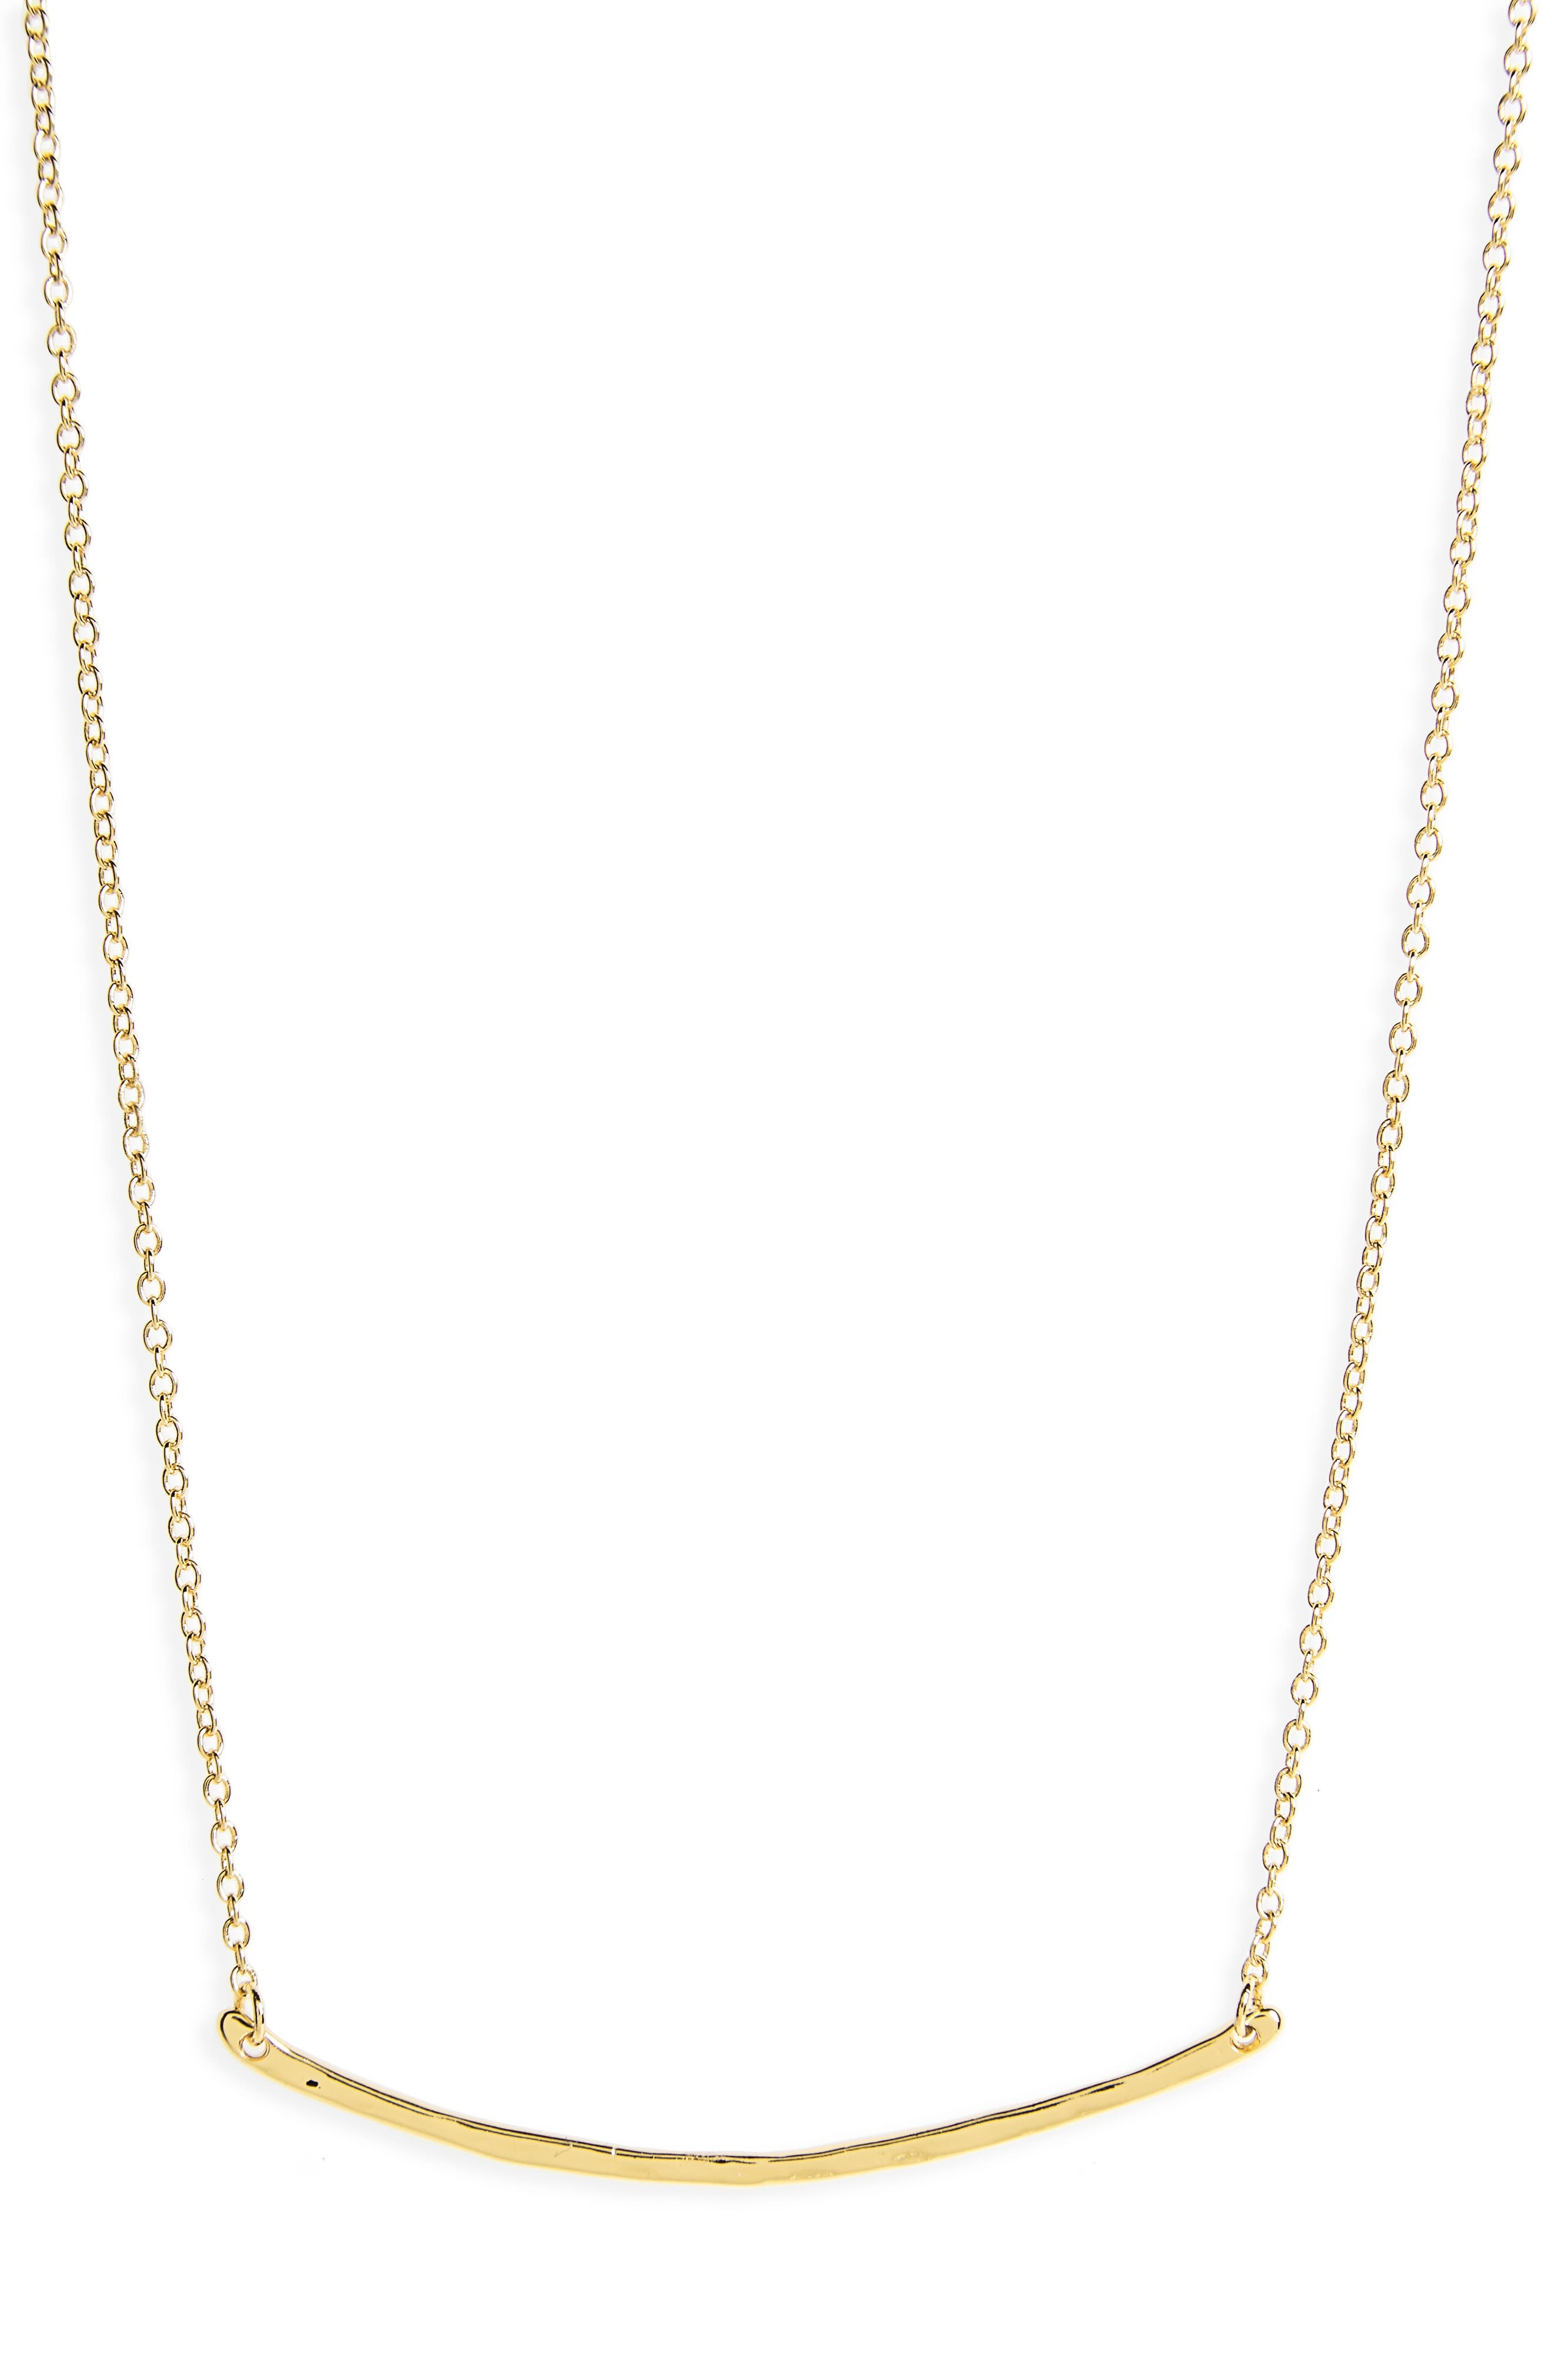 Taner Bar Small Necklace,                         Main,                         color, Gold